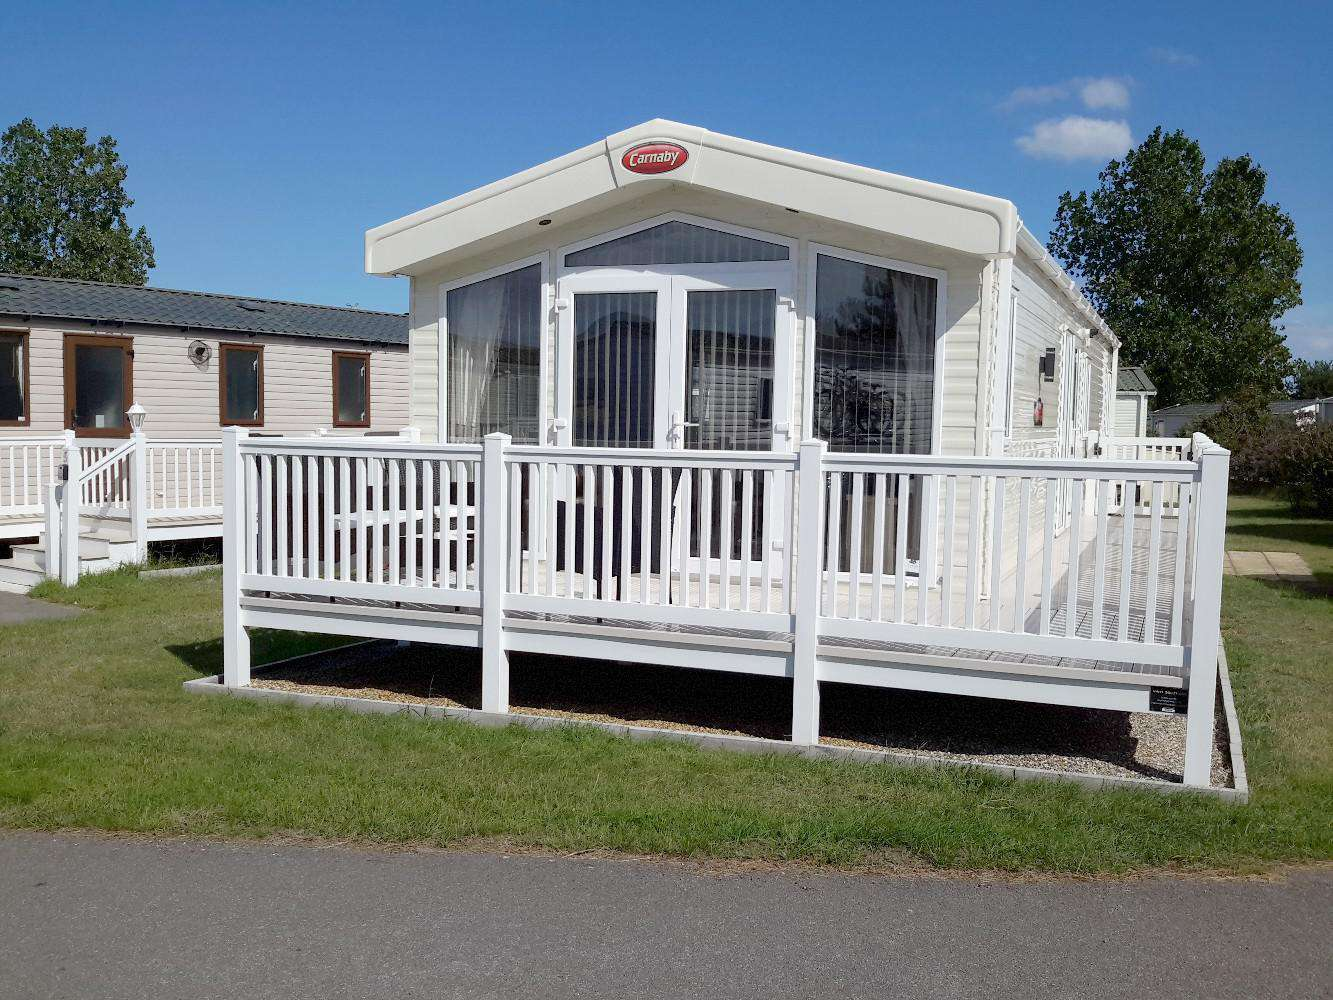 22006E- Eagle View area, 2 bed, 4 berth lodge with decking. Platinum-Deluxe rated. - property